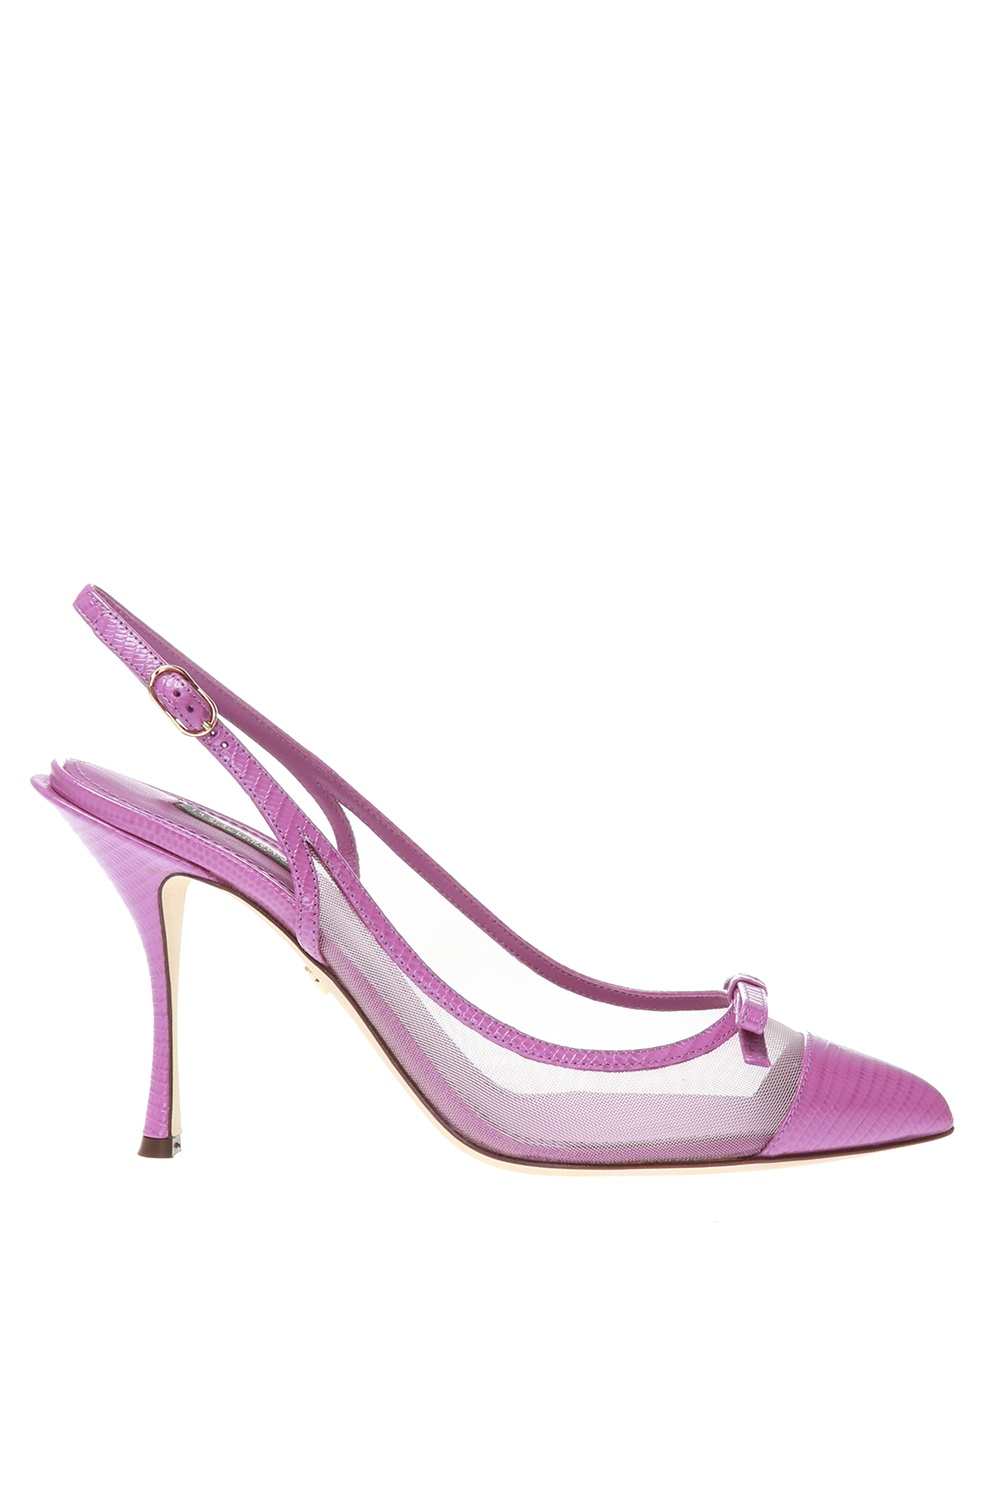 Dolce & Gabbana 'Slingback' pumps with cut-out